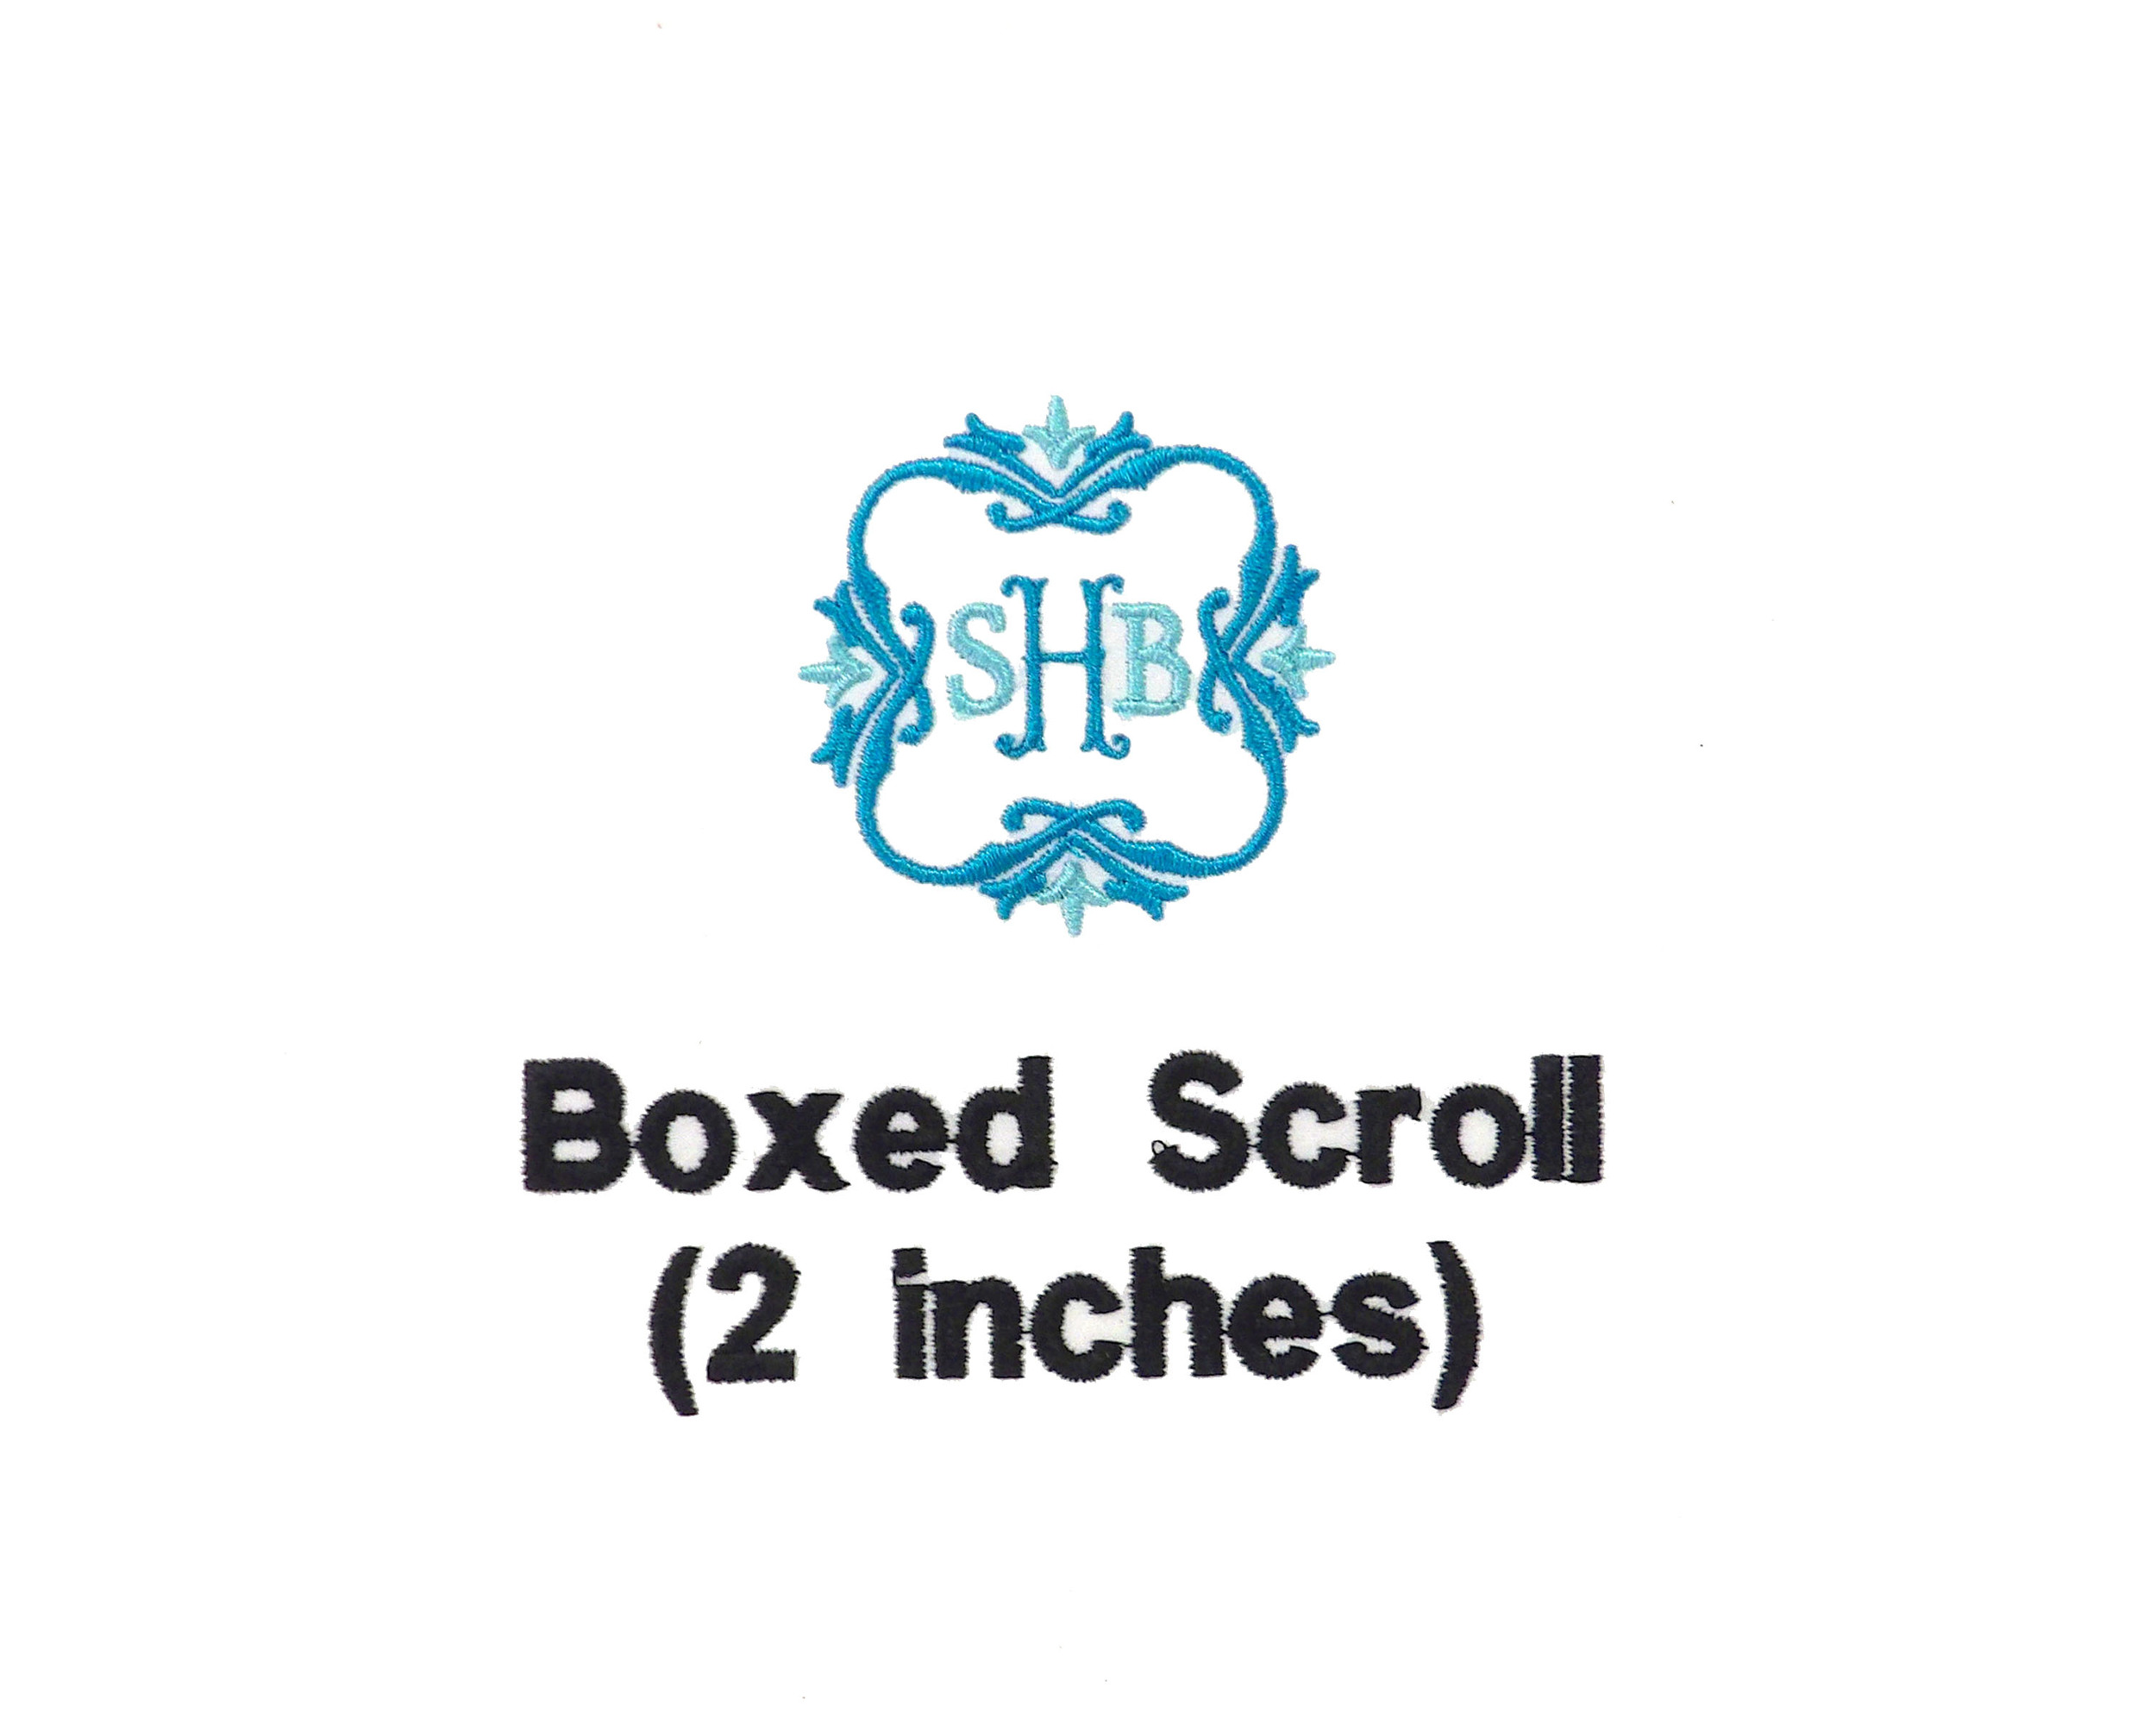 Boxed Scroll 2 inches.jpg